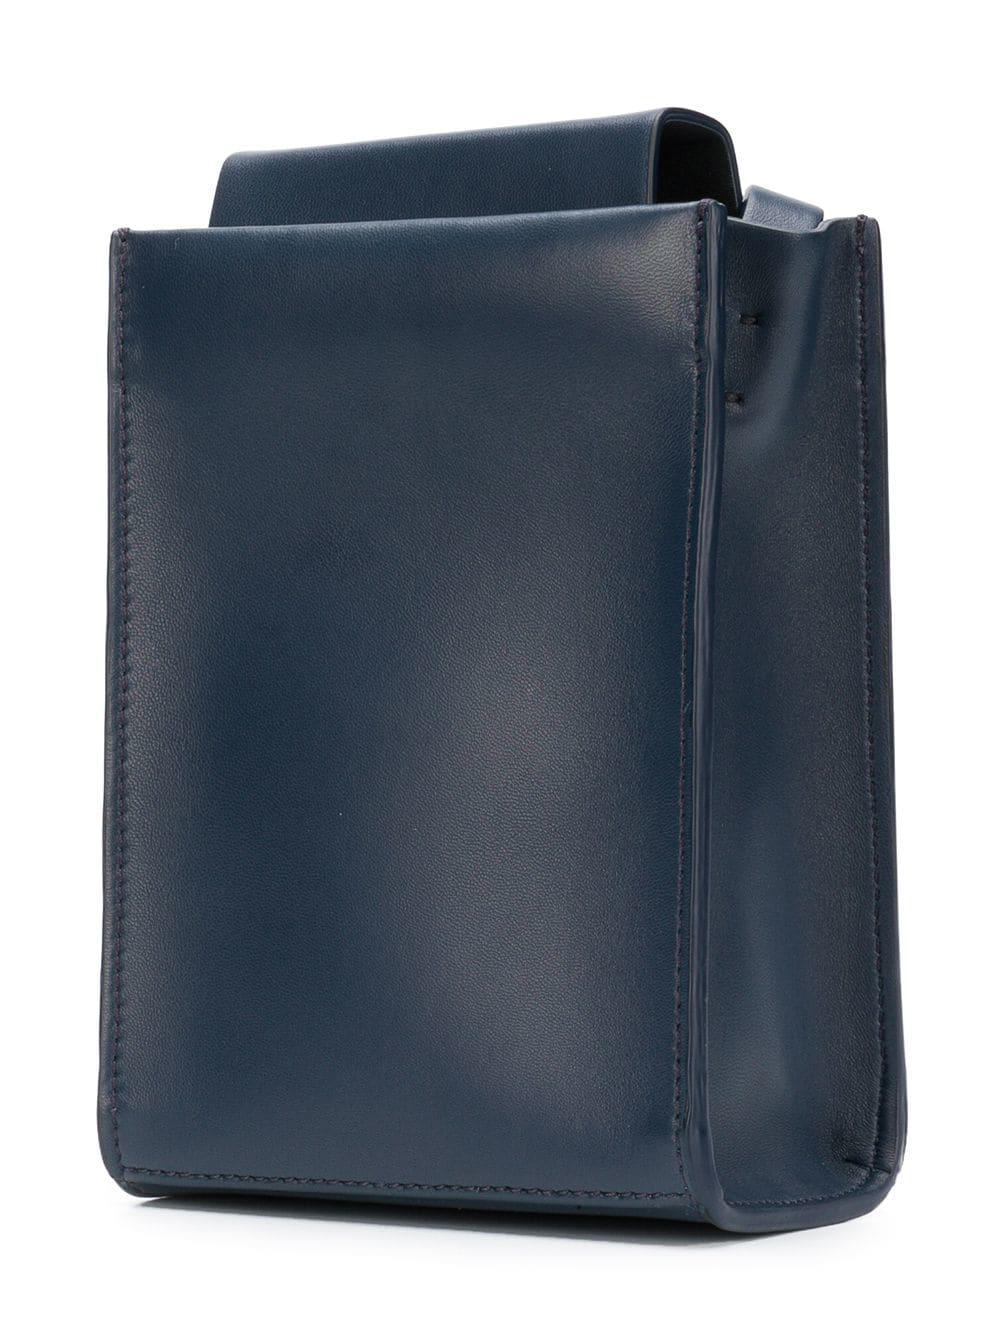 Aesther Ekme Leather Sling Tote Bag in Blue